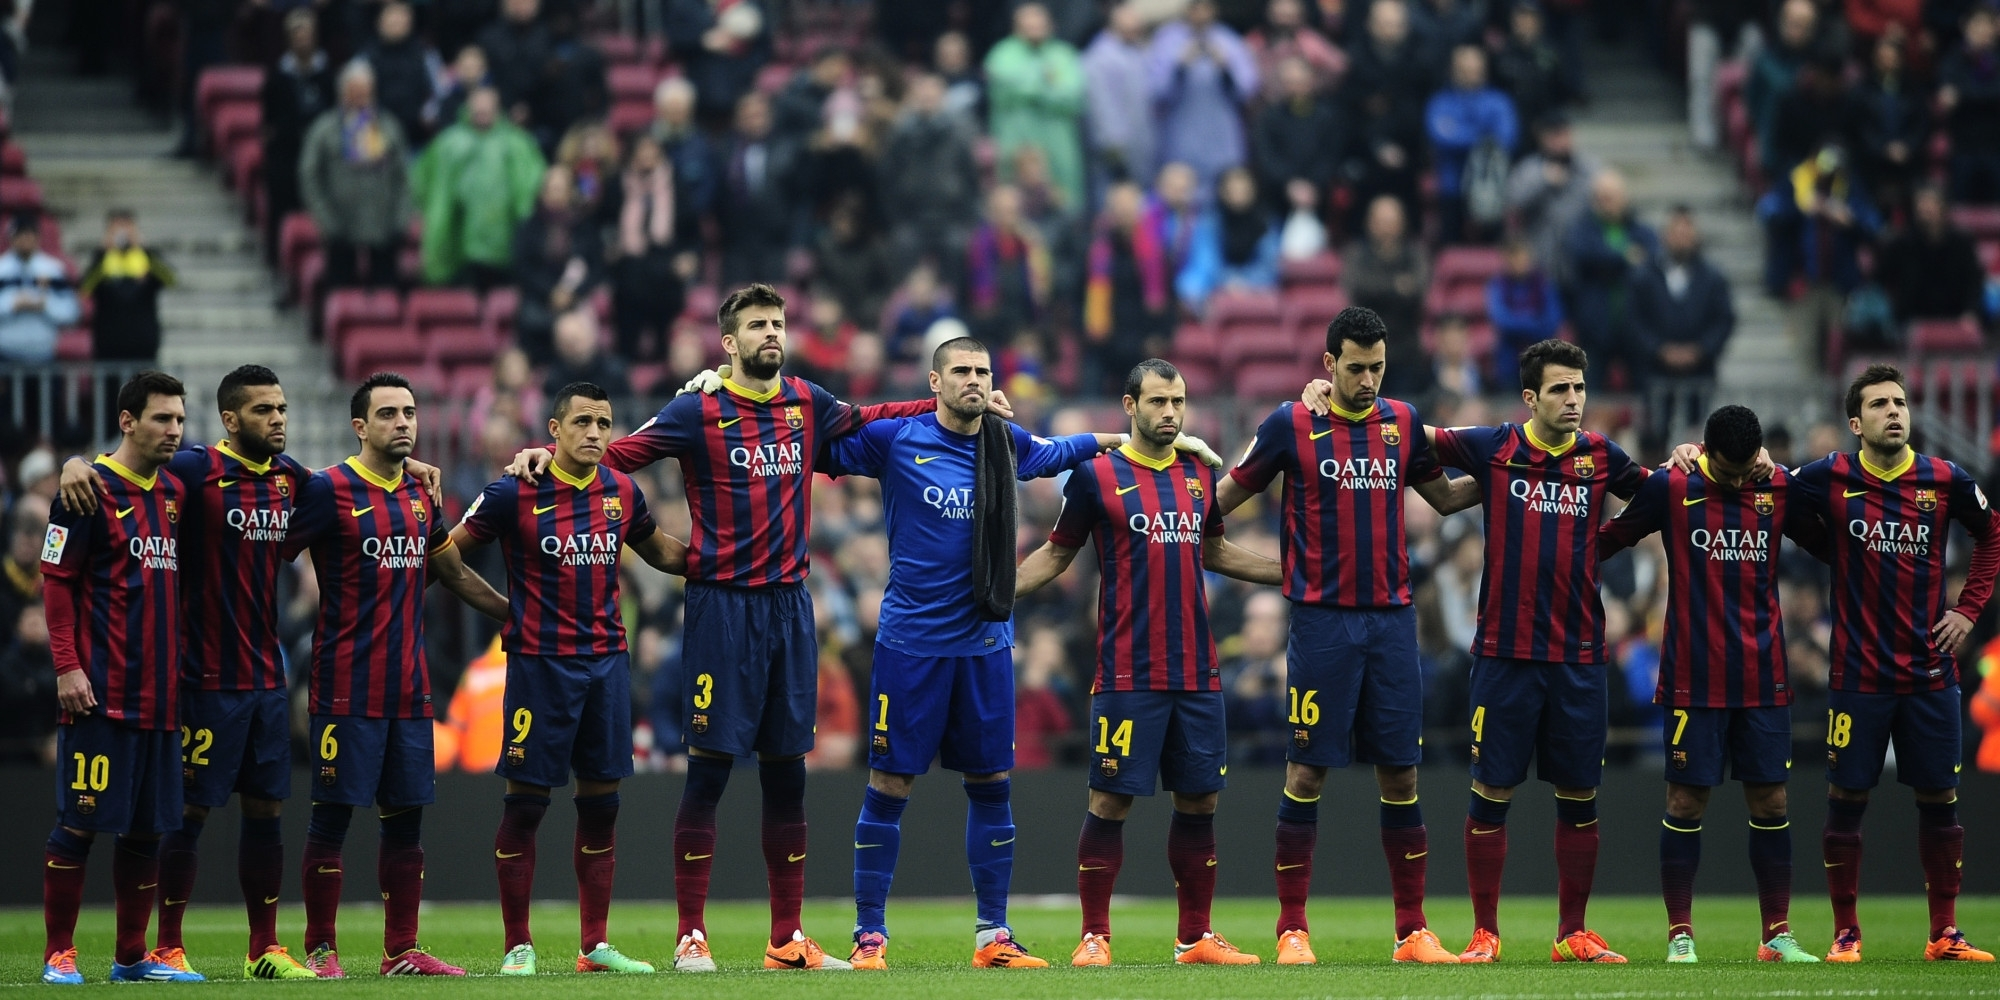 fc barcelona wallpapers hd free download. - media file | pixelstalk